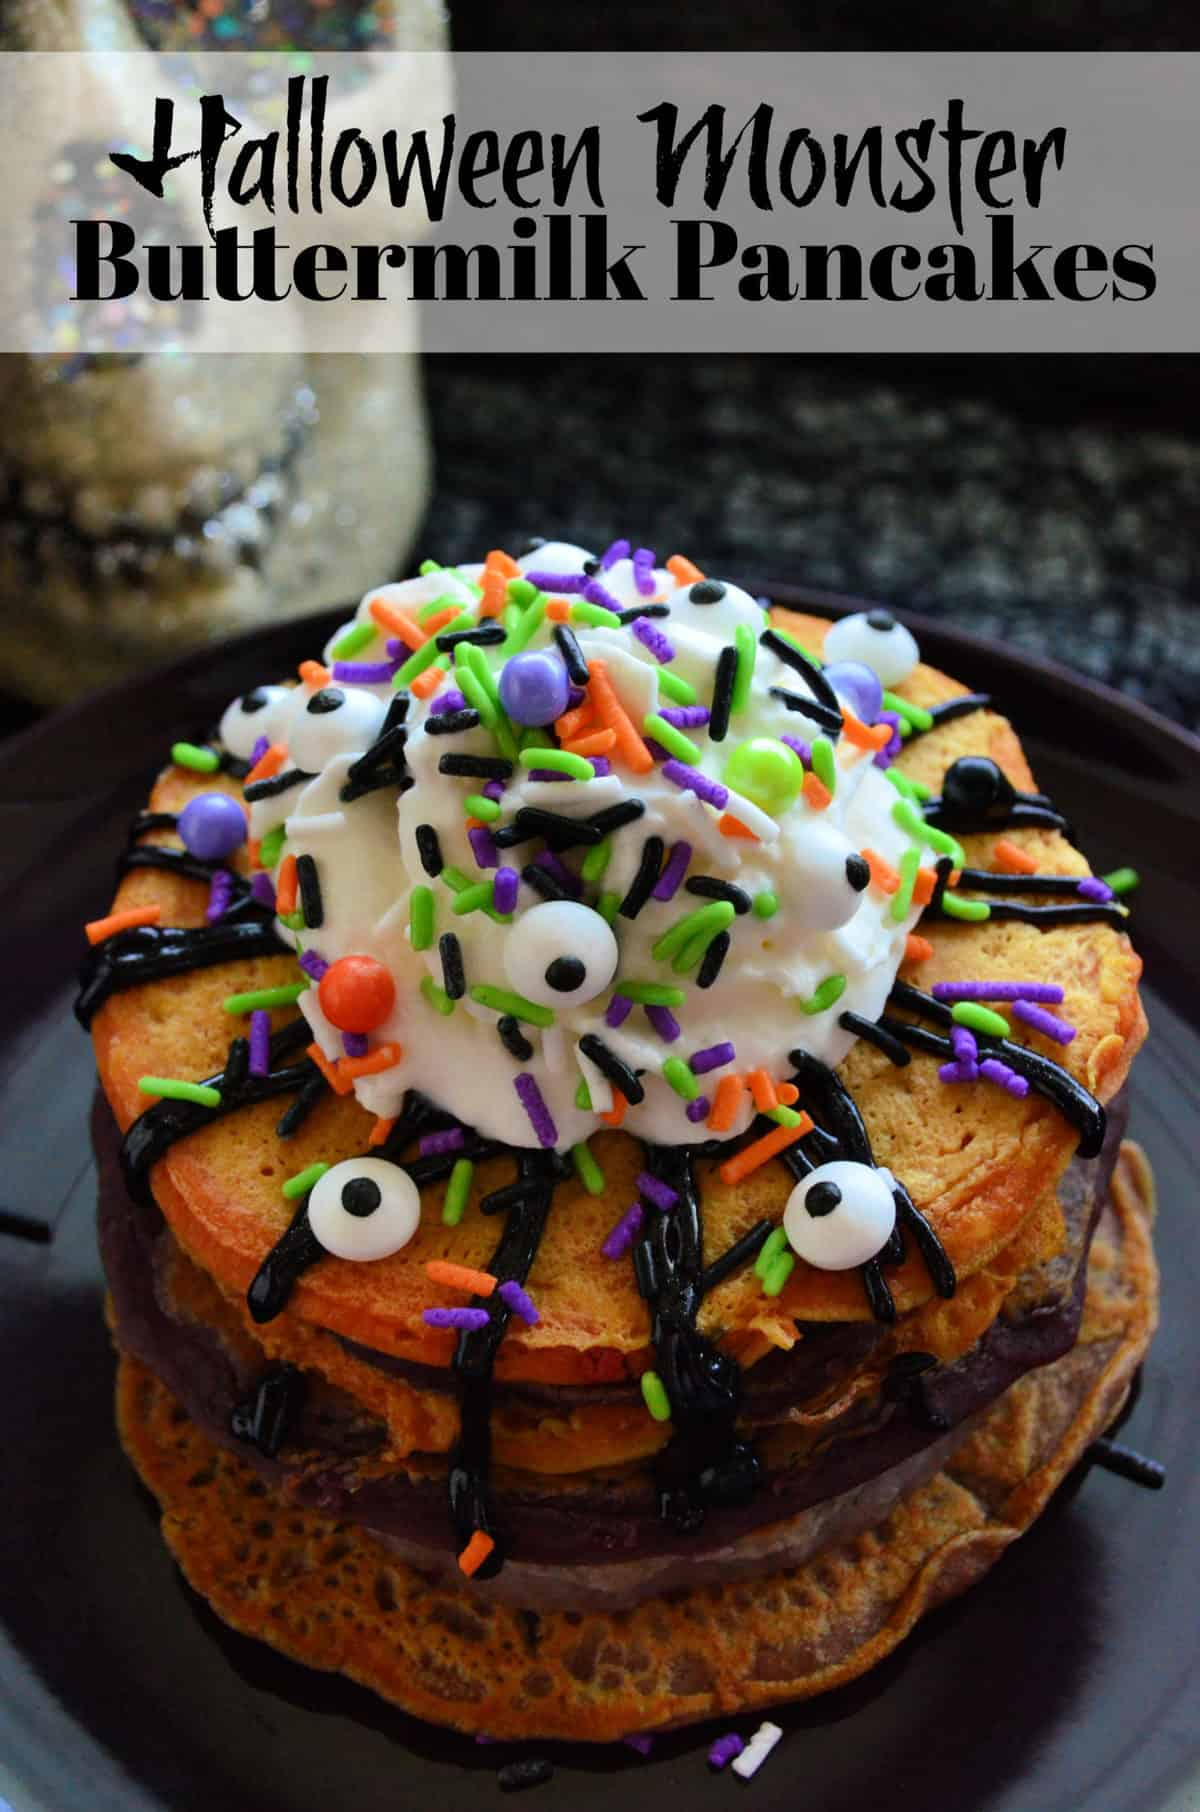 Halloween Monster Buttermilk Pancakes